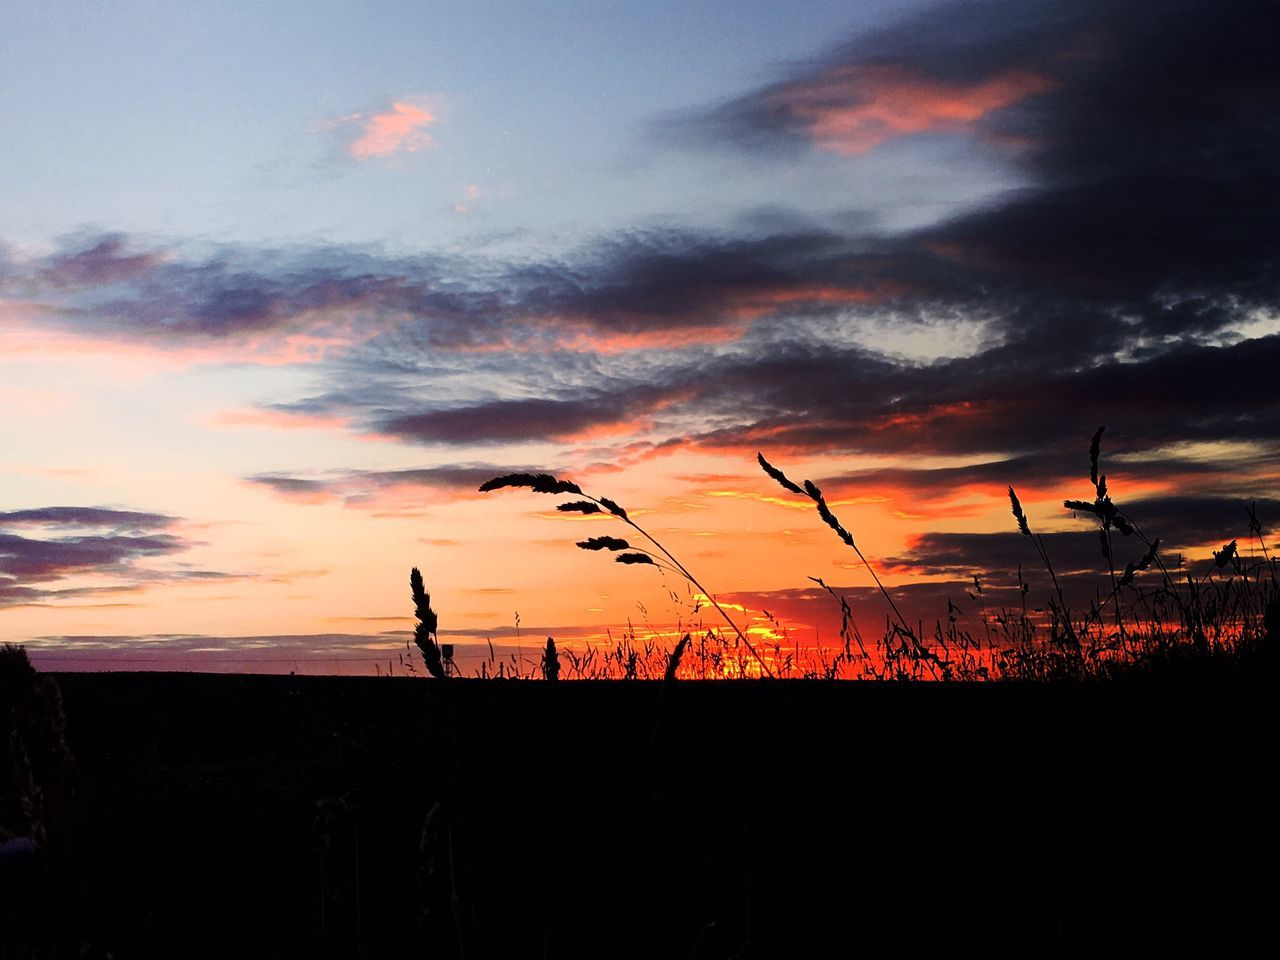 The birth of fire Orange Color Sunset Sky Silhouette Nature Scenics Beauty In Nature Tranquil Scene Outdoors Landscape No People Rural Scene Sunlight Golden Hour Nature_collection Best EyeEm Shot